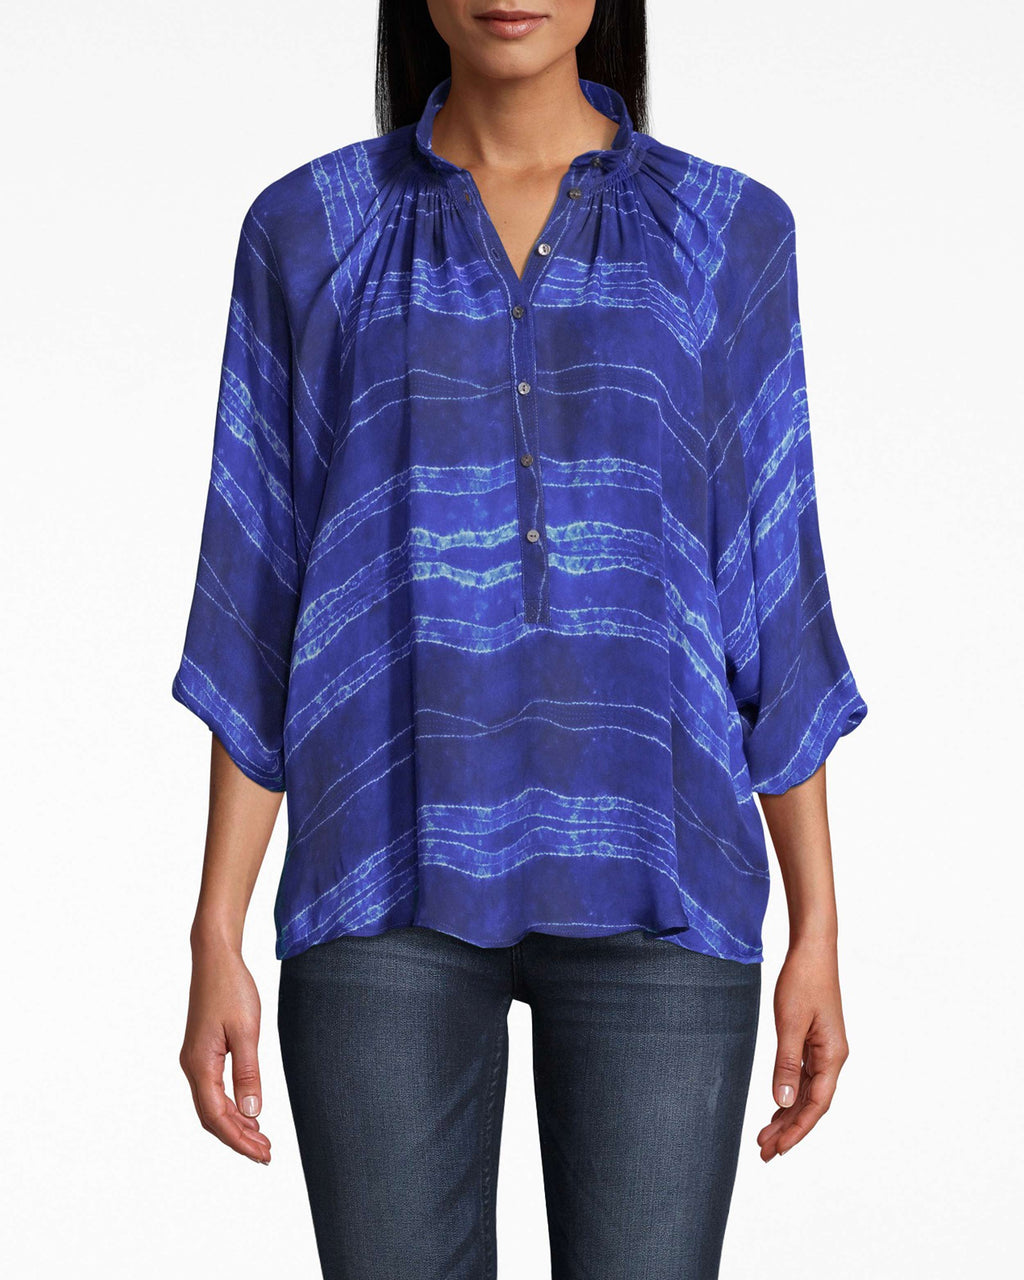 BG10343 - SHIBORI STRIPE SMOCKED COLLAR BLOUSE - tops - blouses - THIS RELAXED SILHOUETTE HAS SUBTLE BUTTONS UP THE FRONT AND A DELICATELY PLEATED COLLAR. OUR SHIBORI STRIPE PRINT UPGRADES THIS CLASSIC TO A STATEMENT PIECE. Add 1 line break STYLIST TIP: STYLE WITH WHITE JEANS AND CHUNKY GOLD HOOPS.